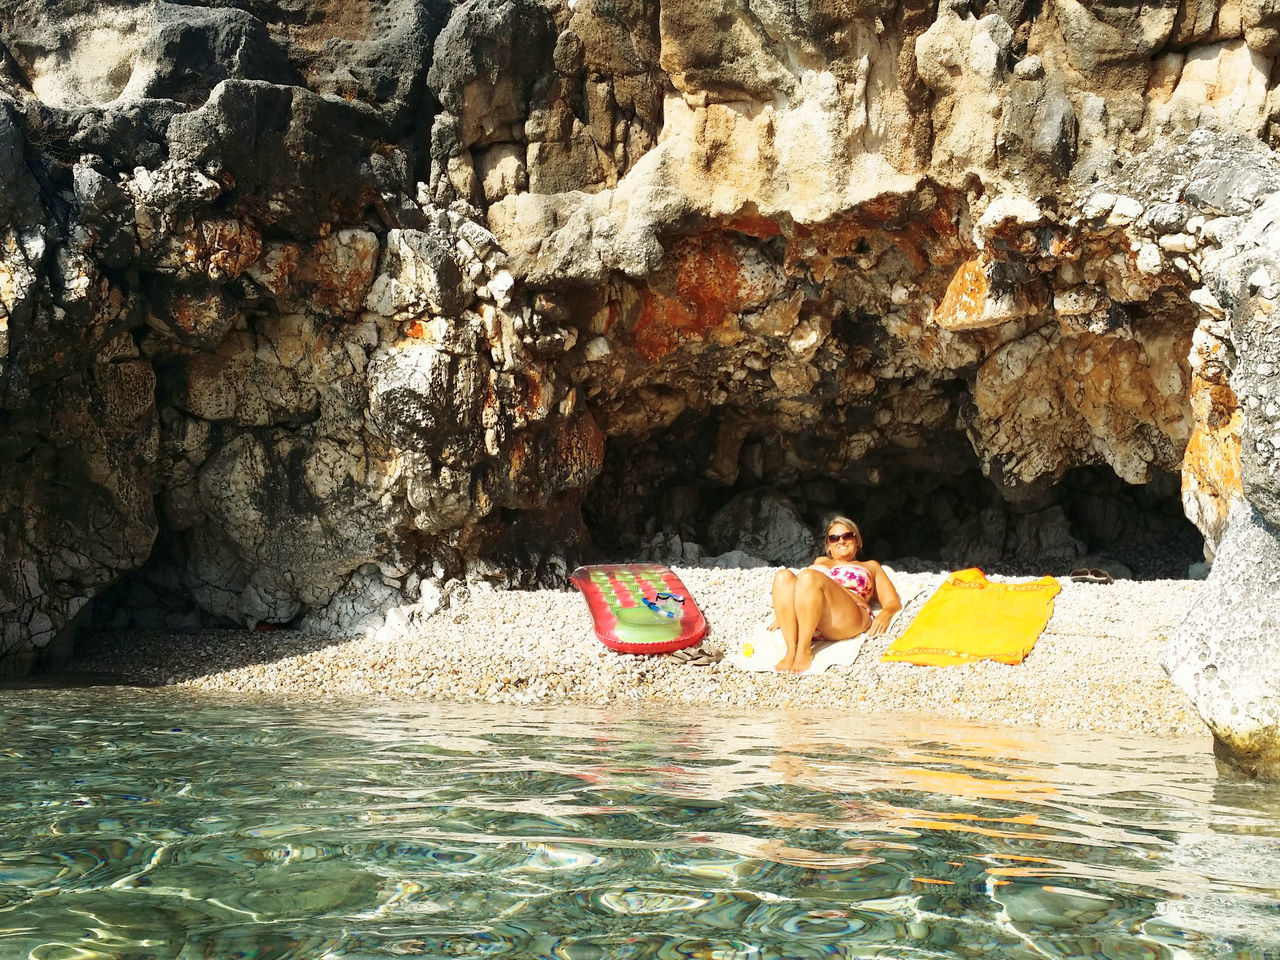 Sunbathing on our own private, secret beach Adult Woman Crystal Clear Waters Day Kefalonia, Greece Outdoors Private Beach Relaxing In The Sun Secluded Cave Secret Places Skala Secret Spaces The Secret Spaces